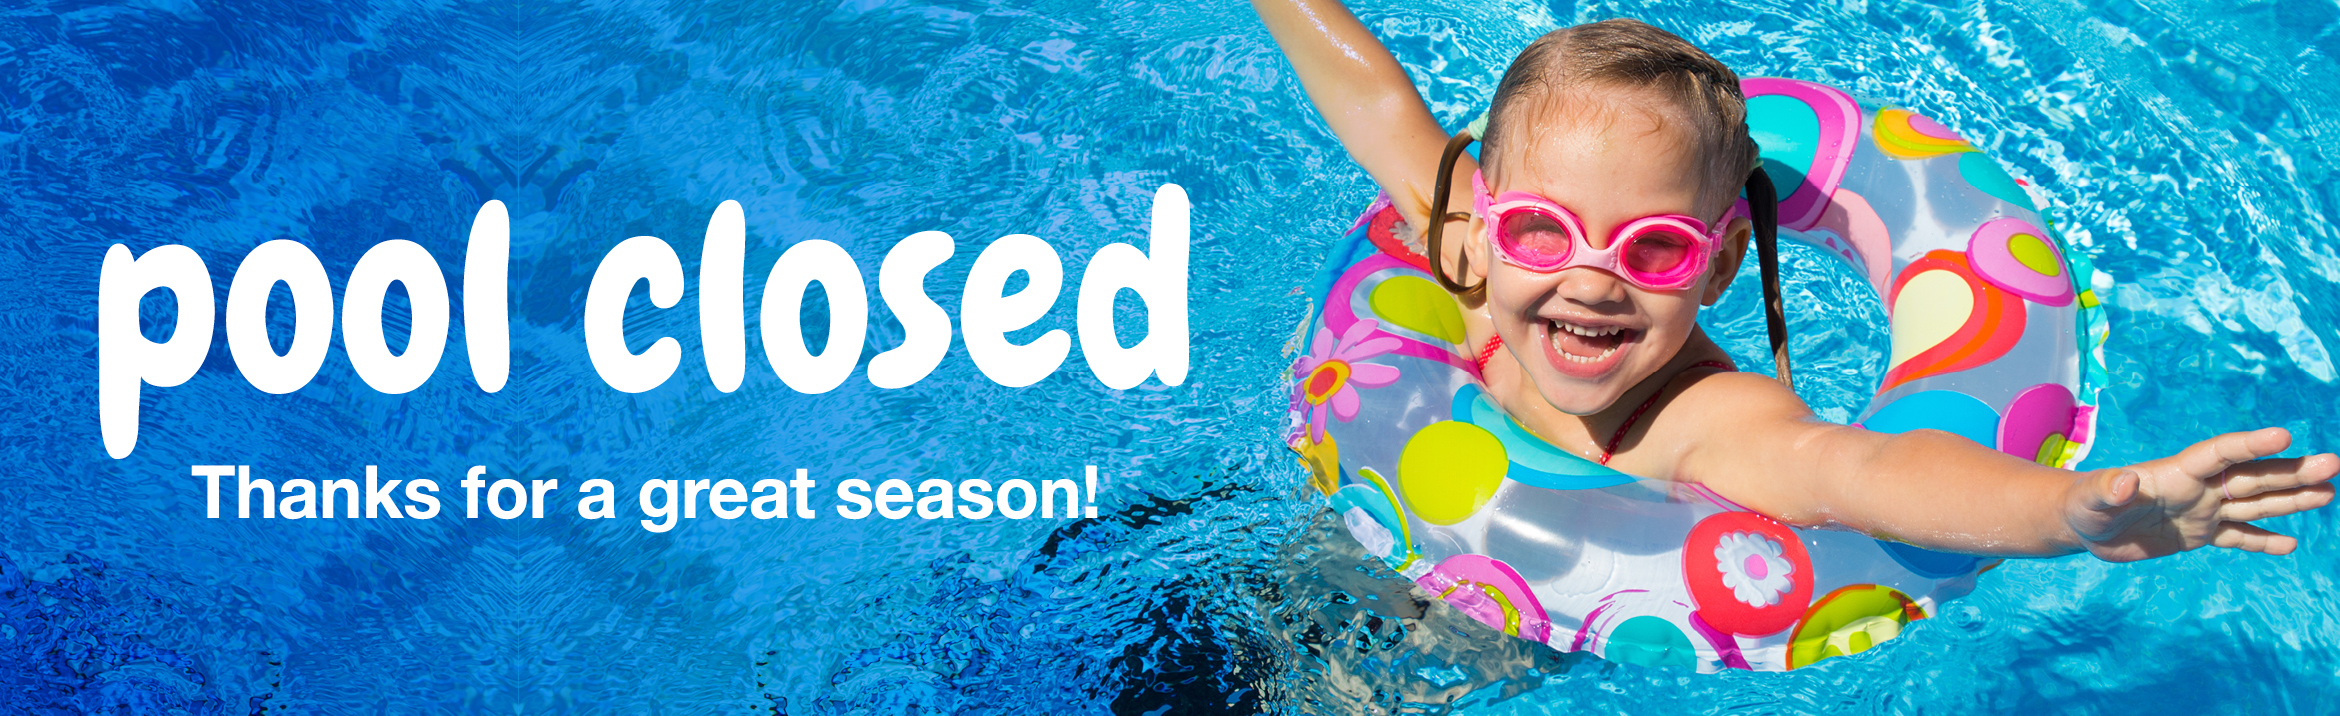 Outdoor-Pools-2017-2018-web-banner-CLOSED.jpg#asset:5995